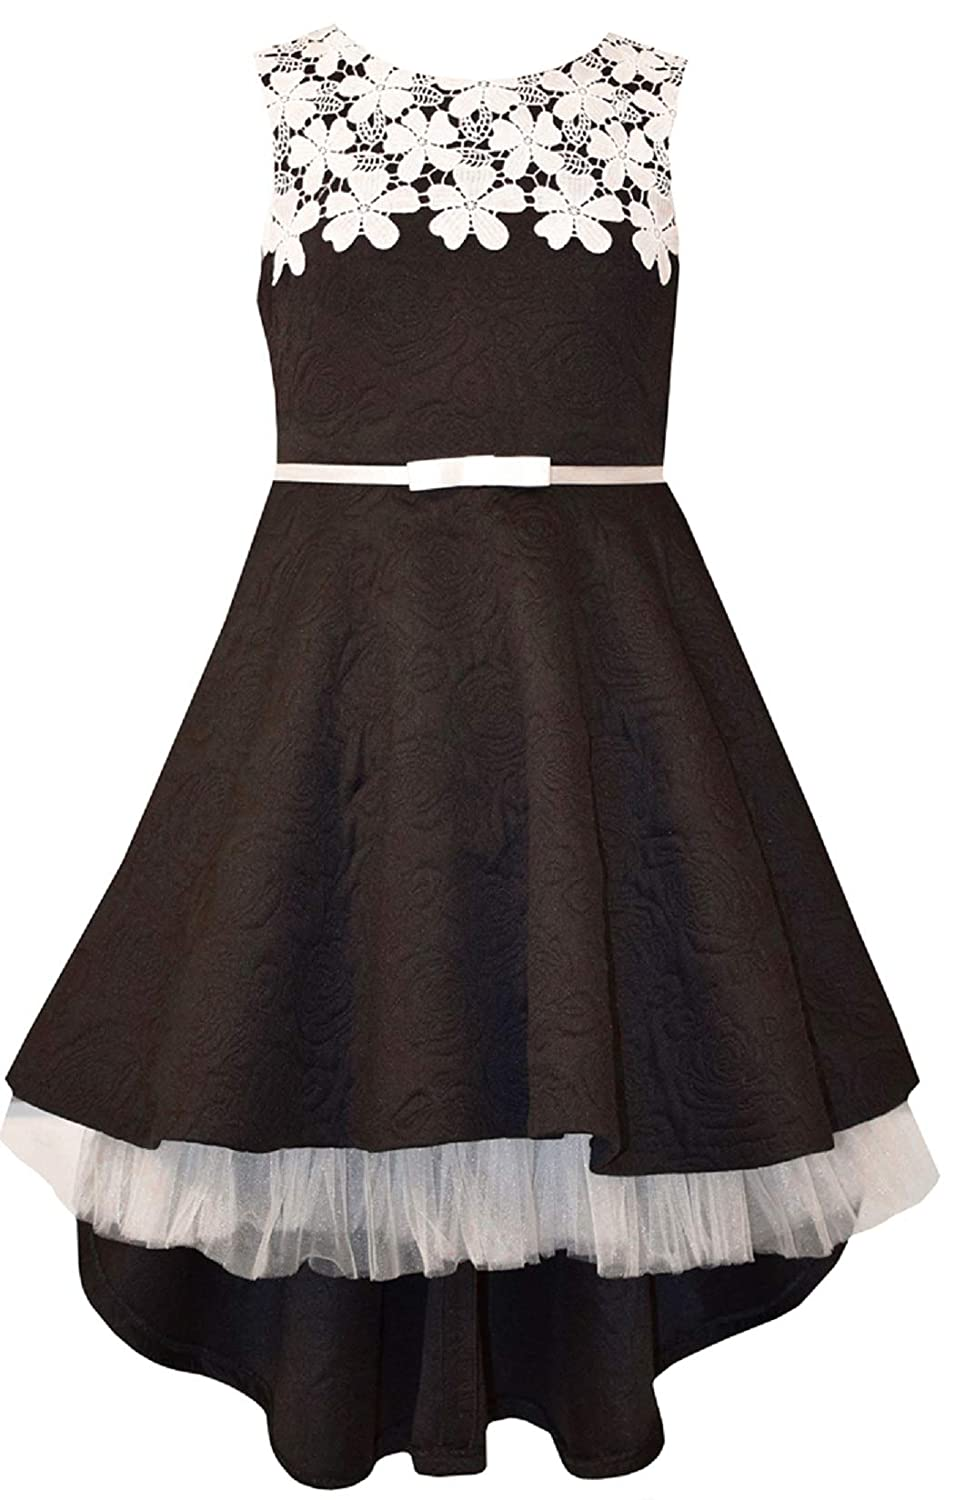 947eedd0e6624 Amazon.com: Bonnie Jean Big Girls 7-16 Sleeveless Lace belted High low Dress  - Black Party Dress: Clothing